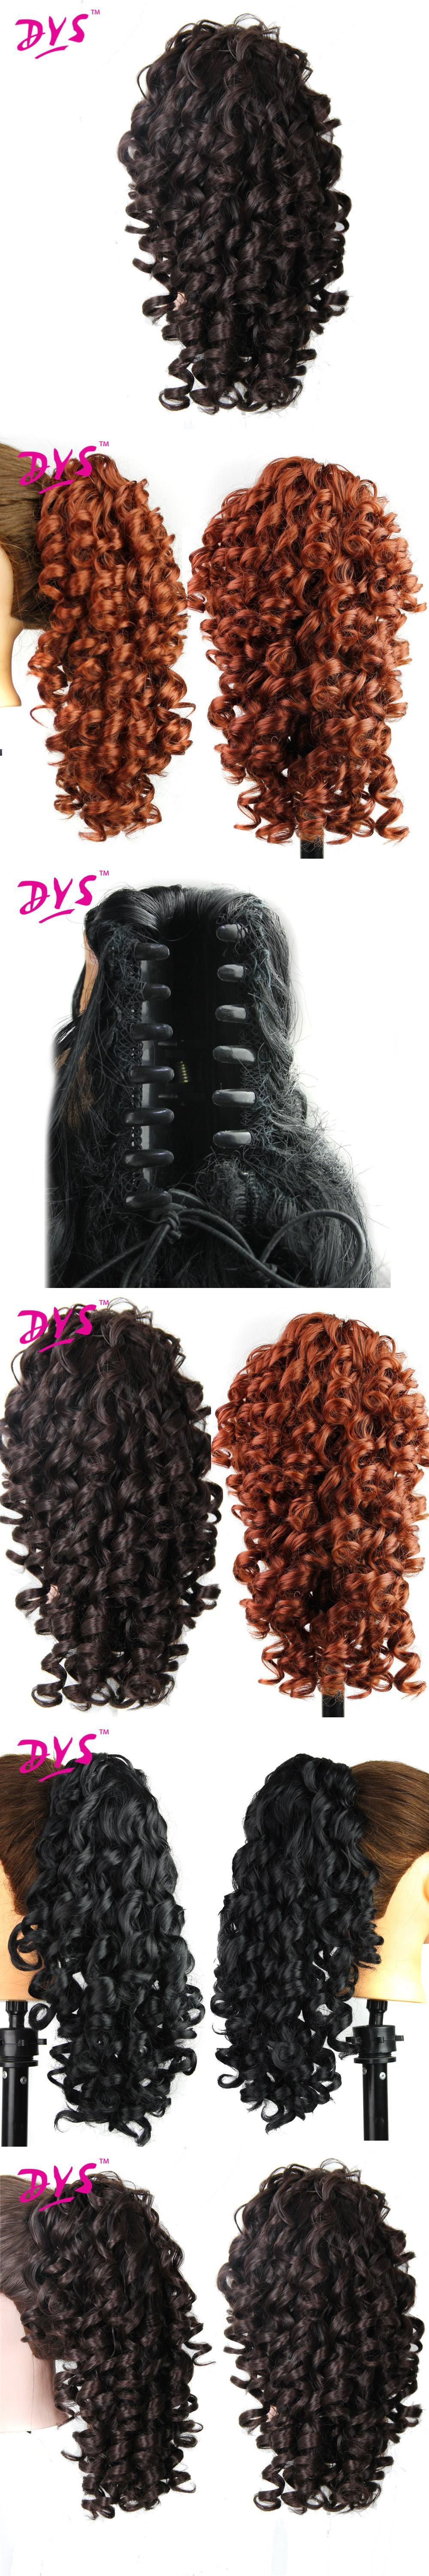 Deyngs 20inch Kinky Curly Claw In Ponytail Hair Extensions Fake Hair